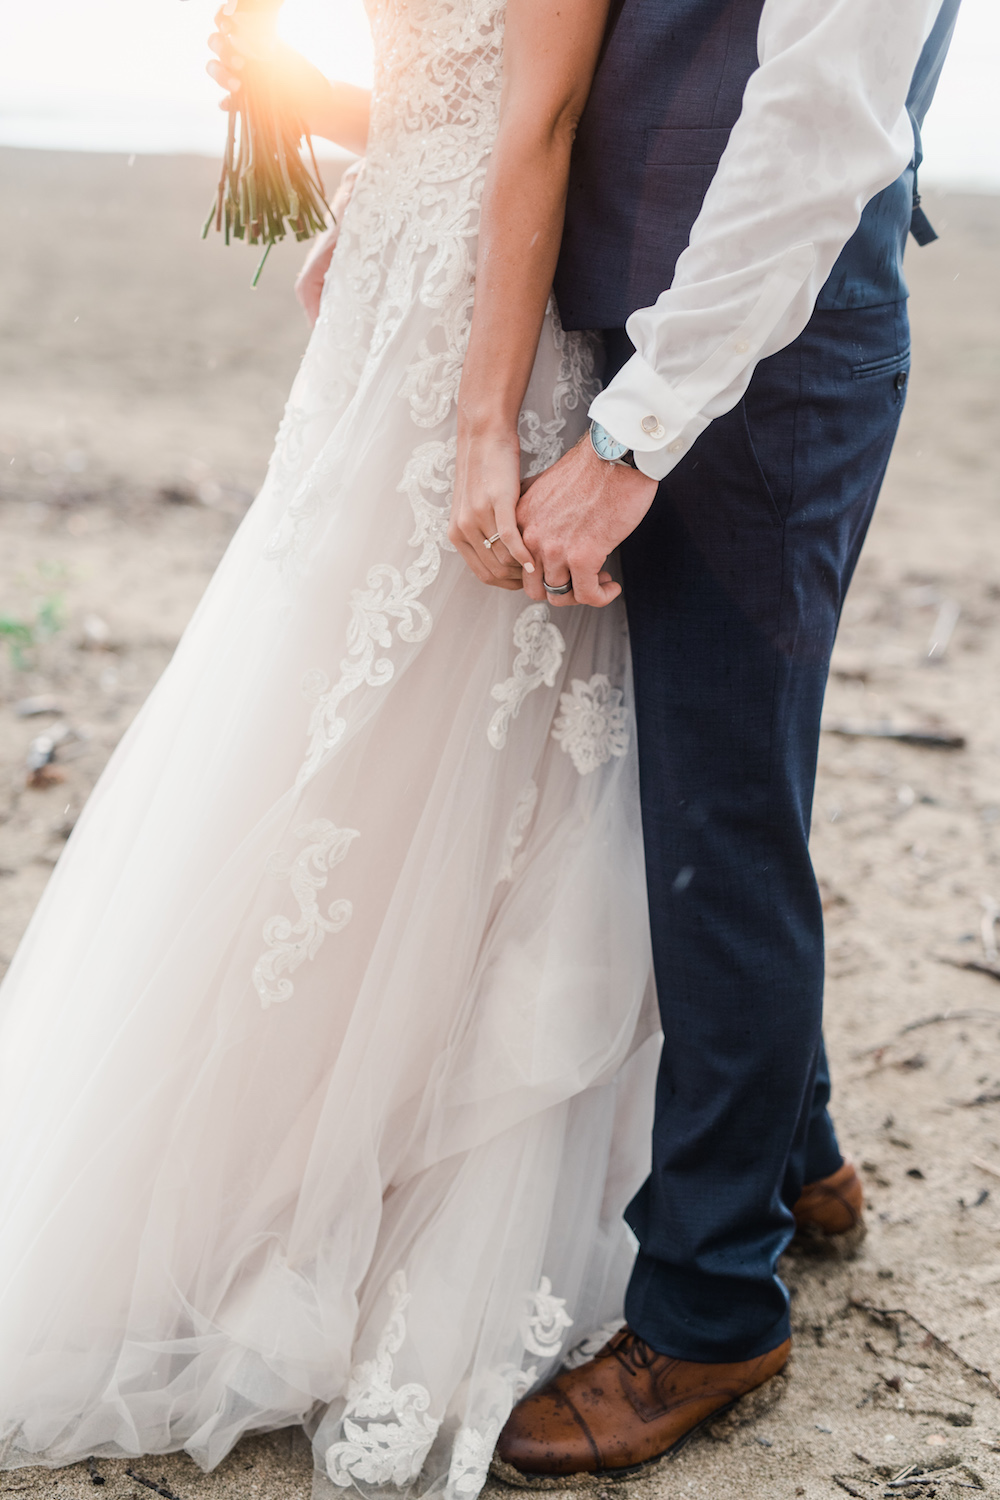 catherineannphotographywedding8418jessicapeter594.jpg